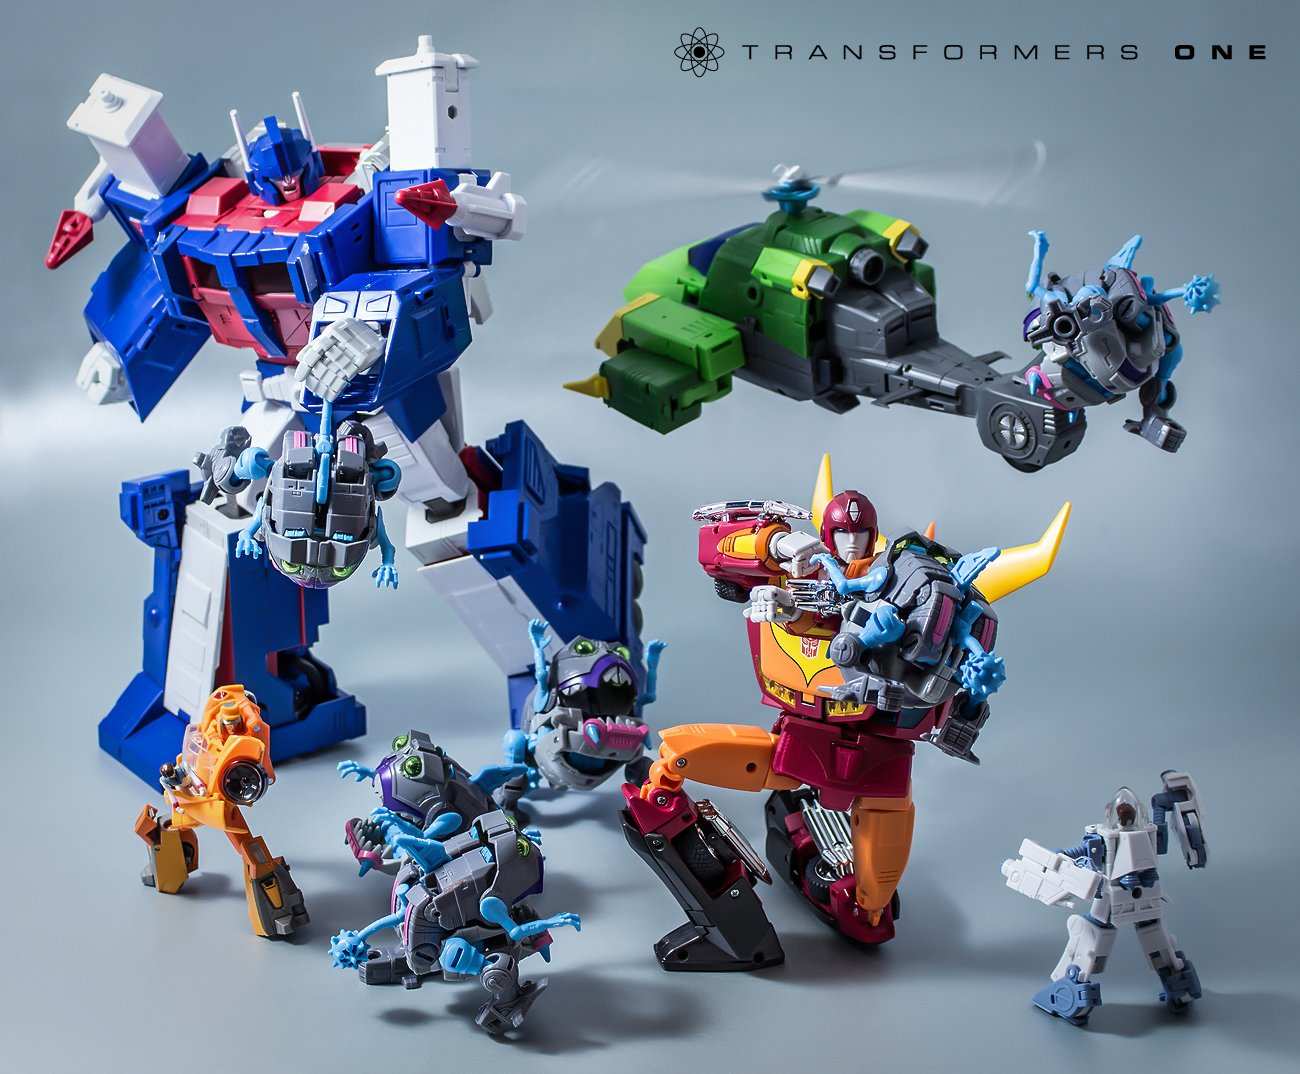 Maz-tf-square-one-transformers